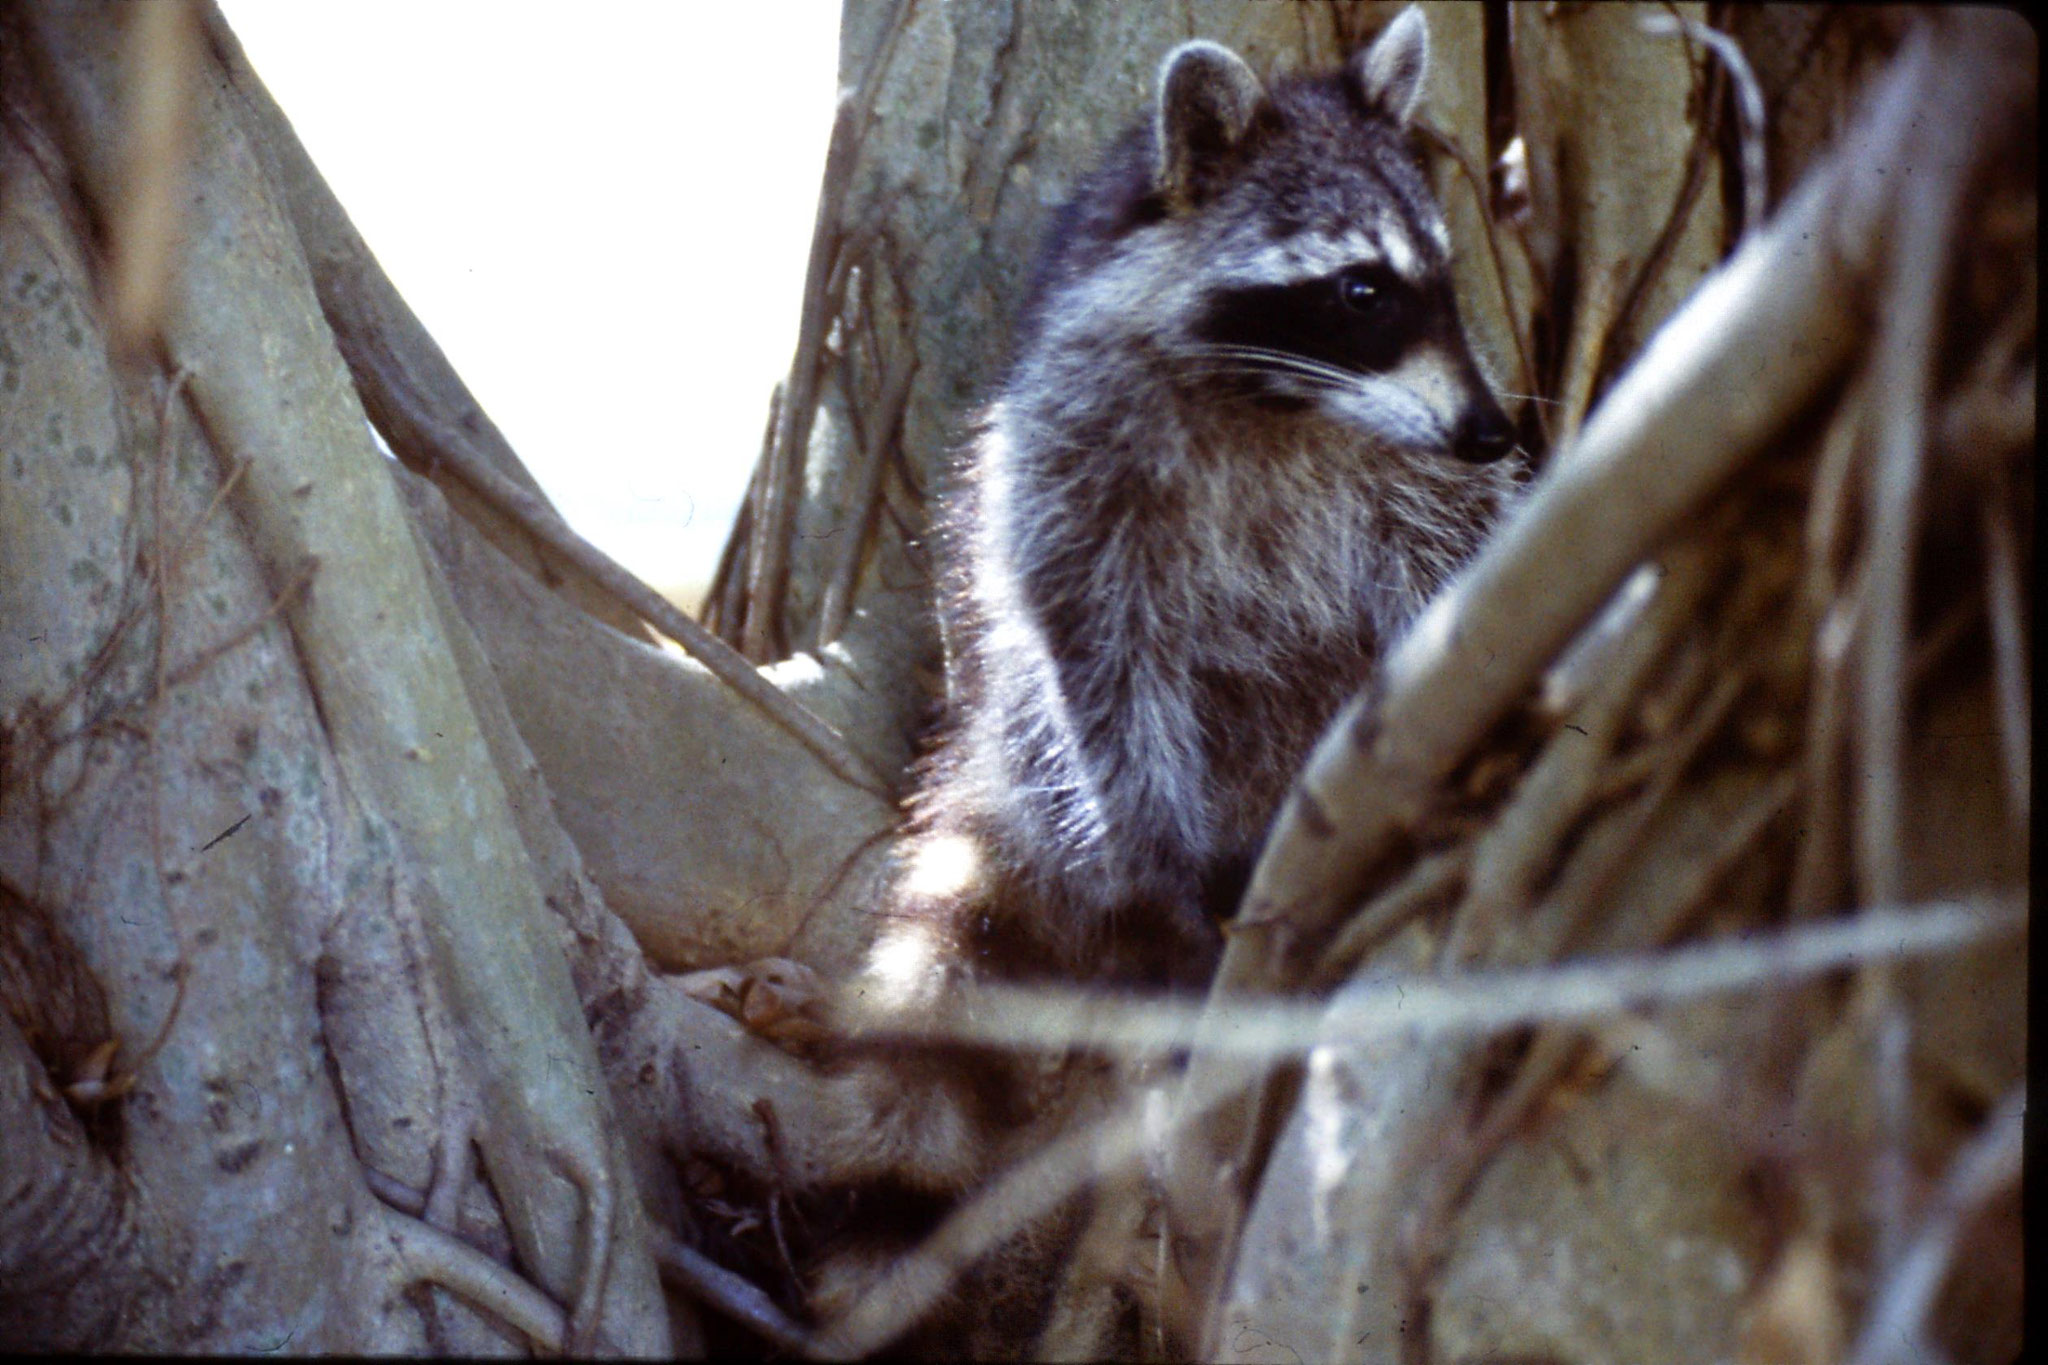 8/3/1991: 2: Key Biscayne raccoon